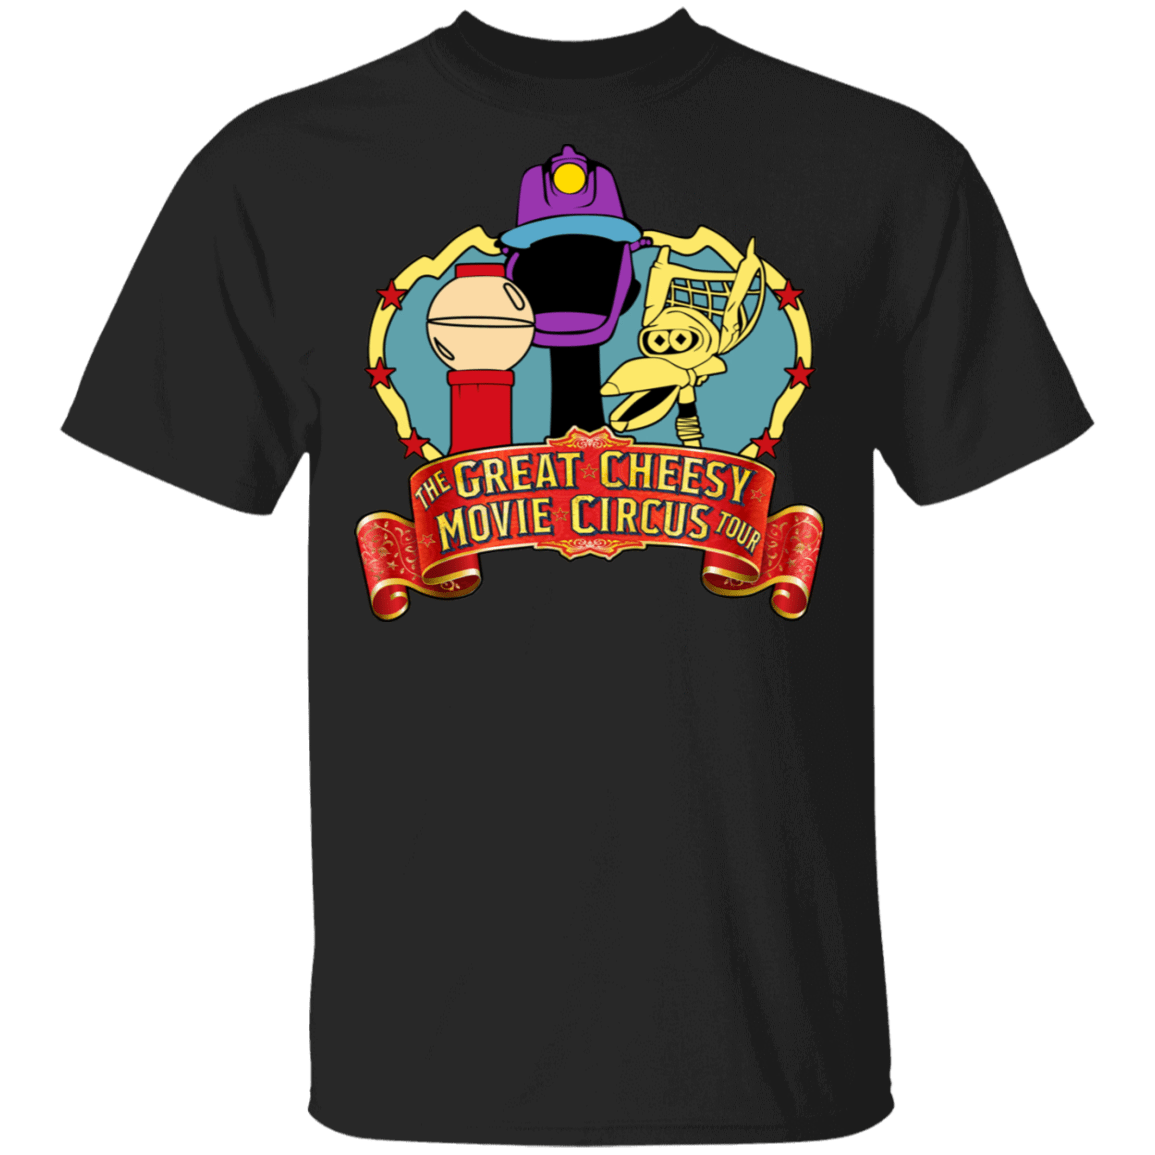 The Great Cheesy Movie Circus Tour T-Shirts, Hoodies, Tank 1049-9953-81647163-48144 - Tee Ript